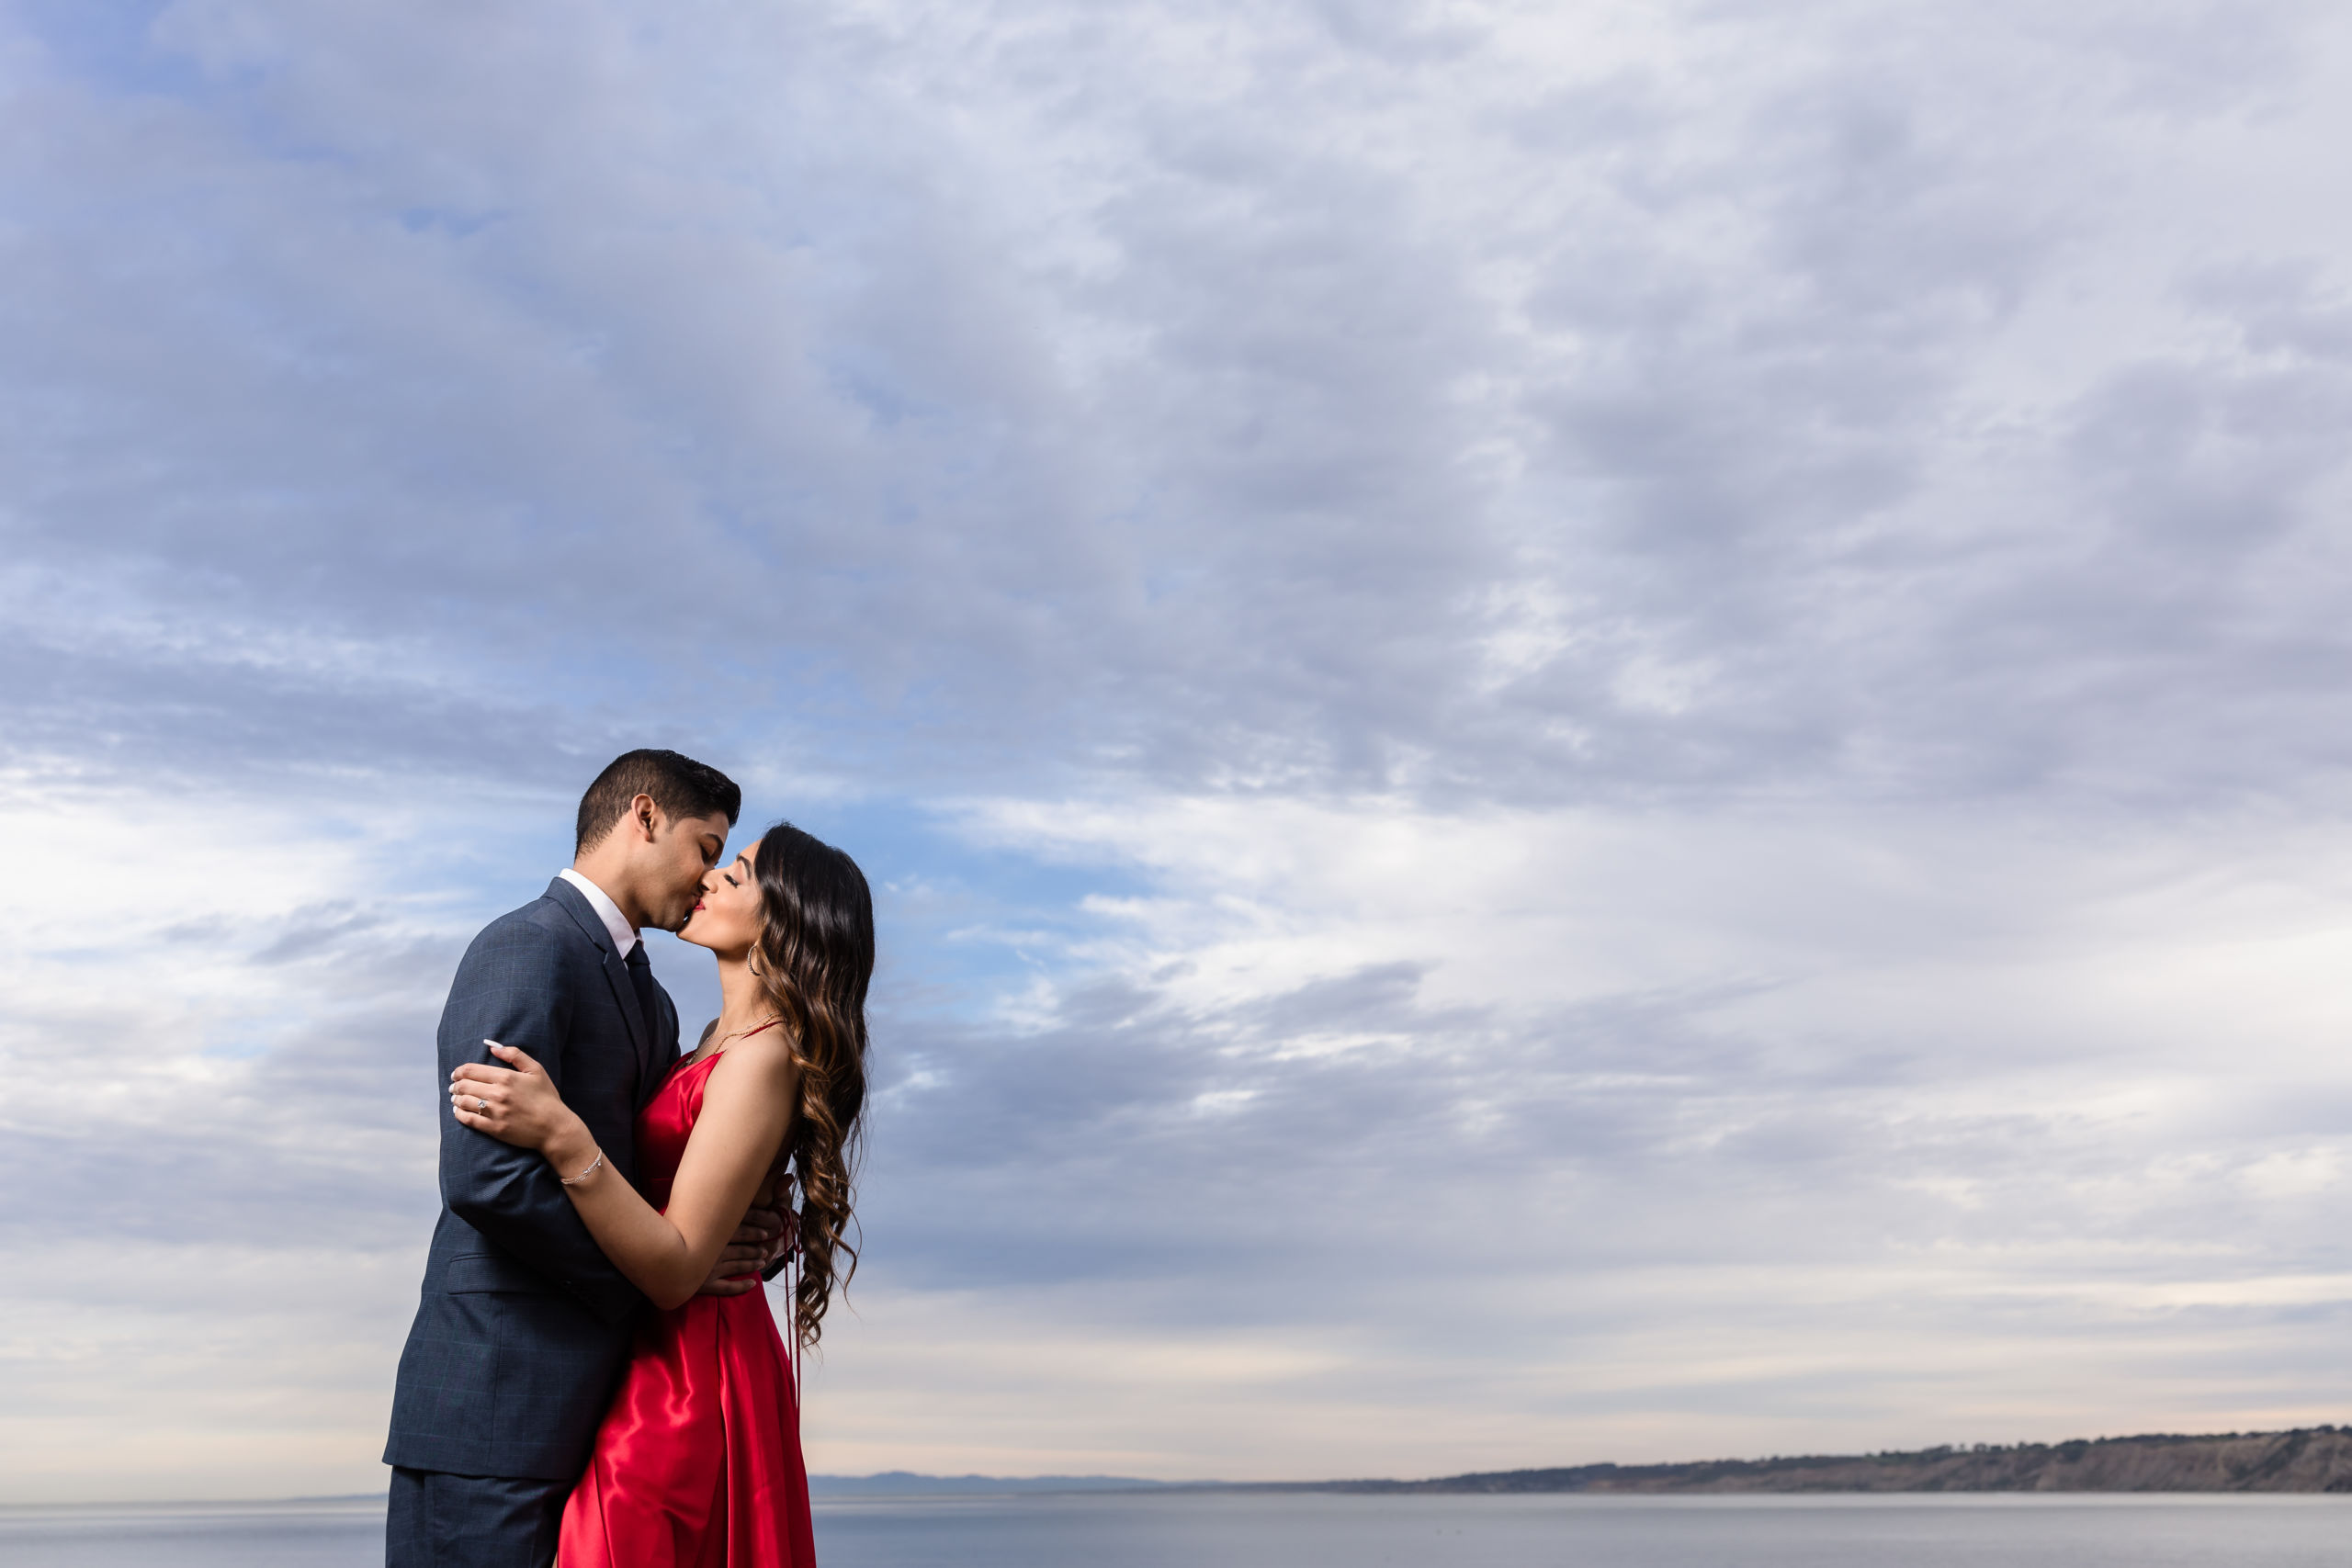 0043 PD La Jolla Cove San Diego County Engagement Photography